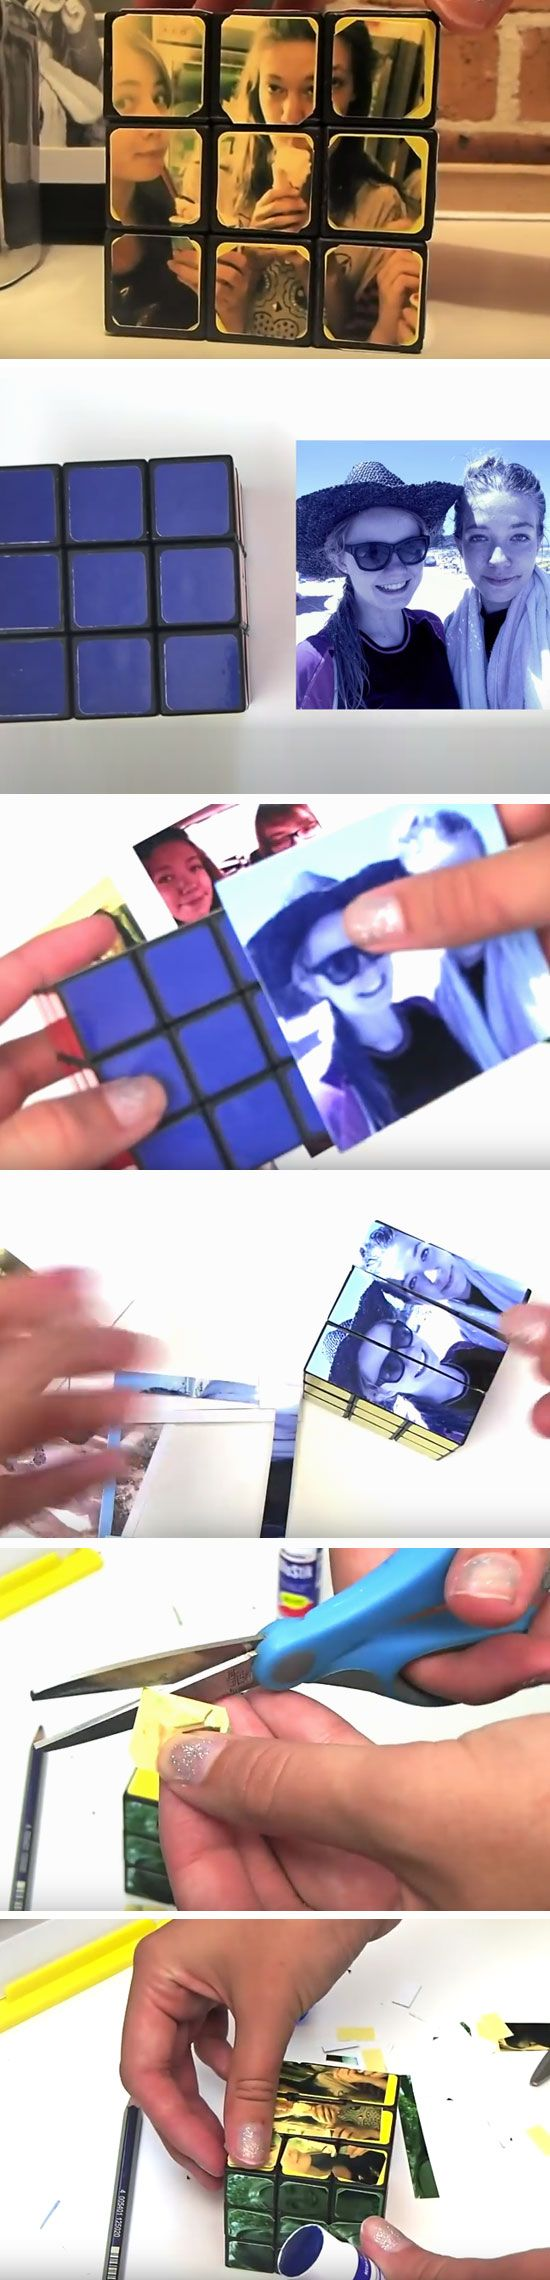 Rubiks Cube Photos | Last Minute DIY Christmas Gifts for Kids | Easy to Make Christmas Gifts